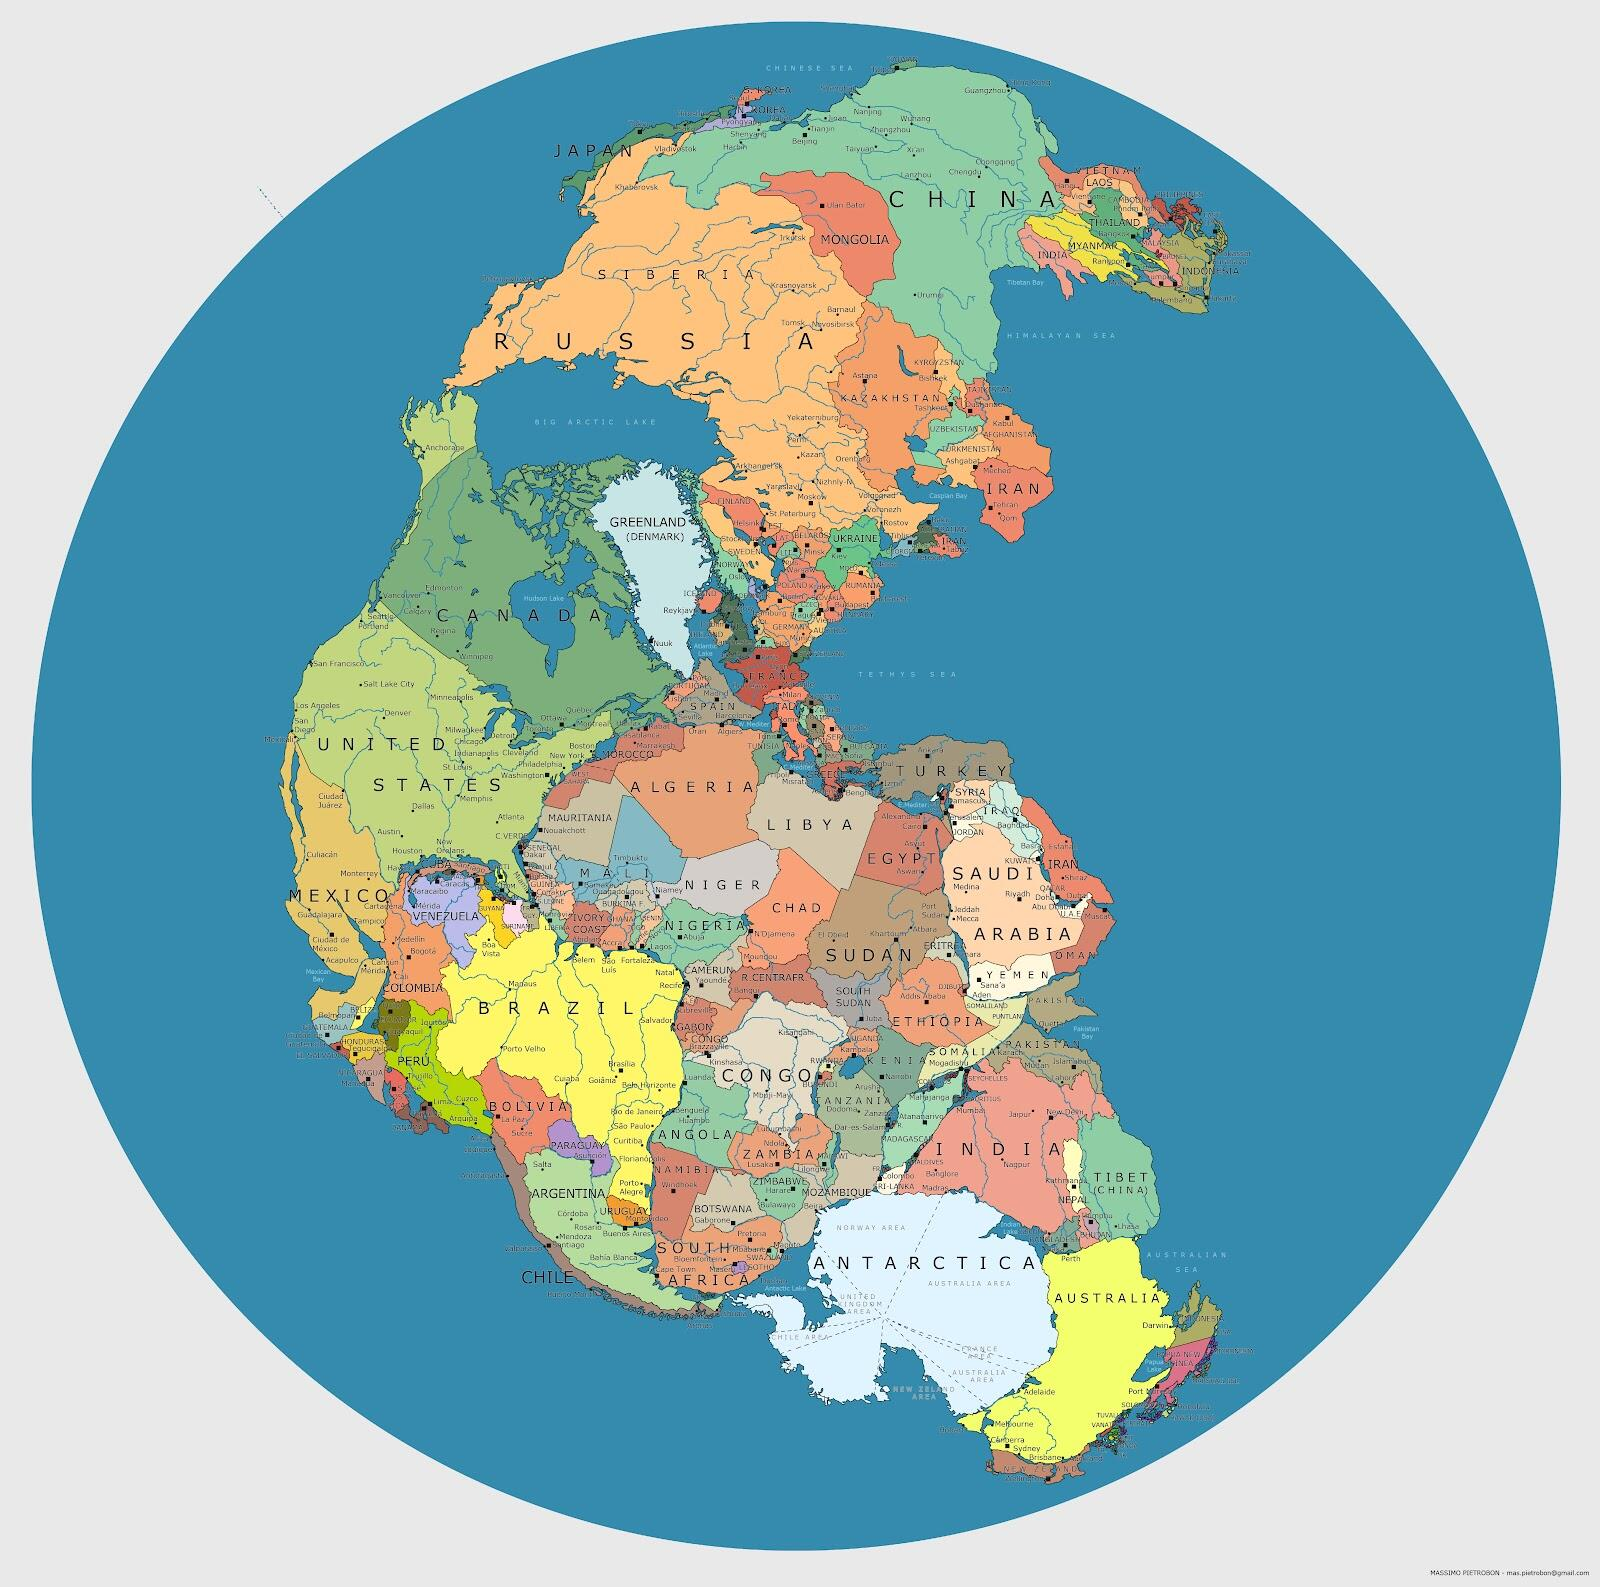 Map of Pangaea with current international borders http://t.co/H5SB5xpG9k